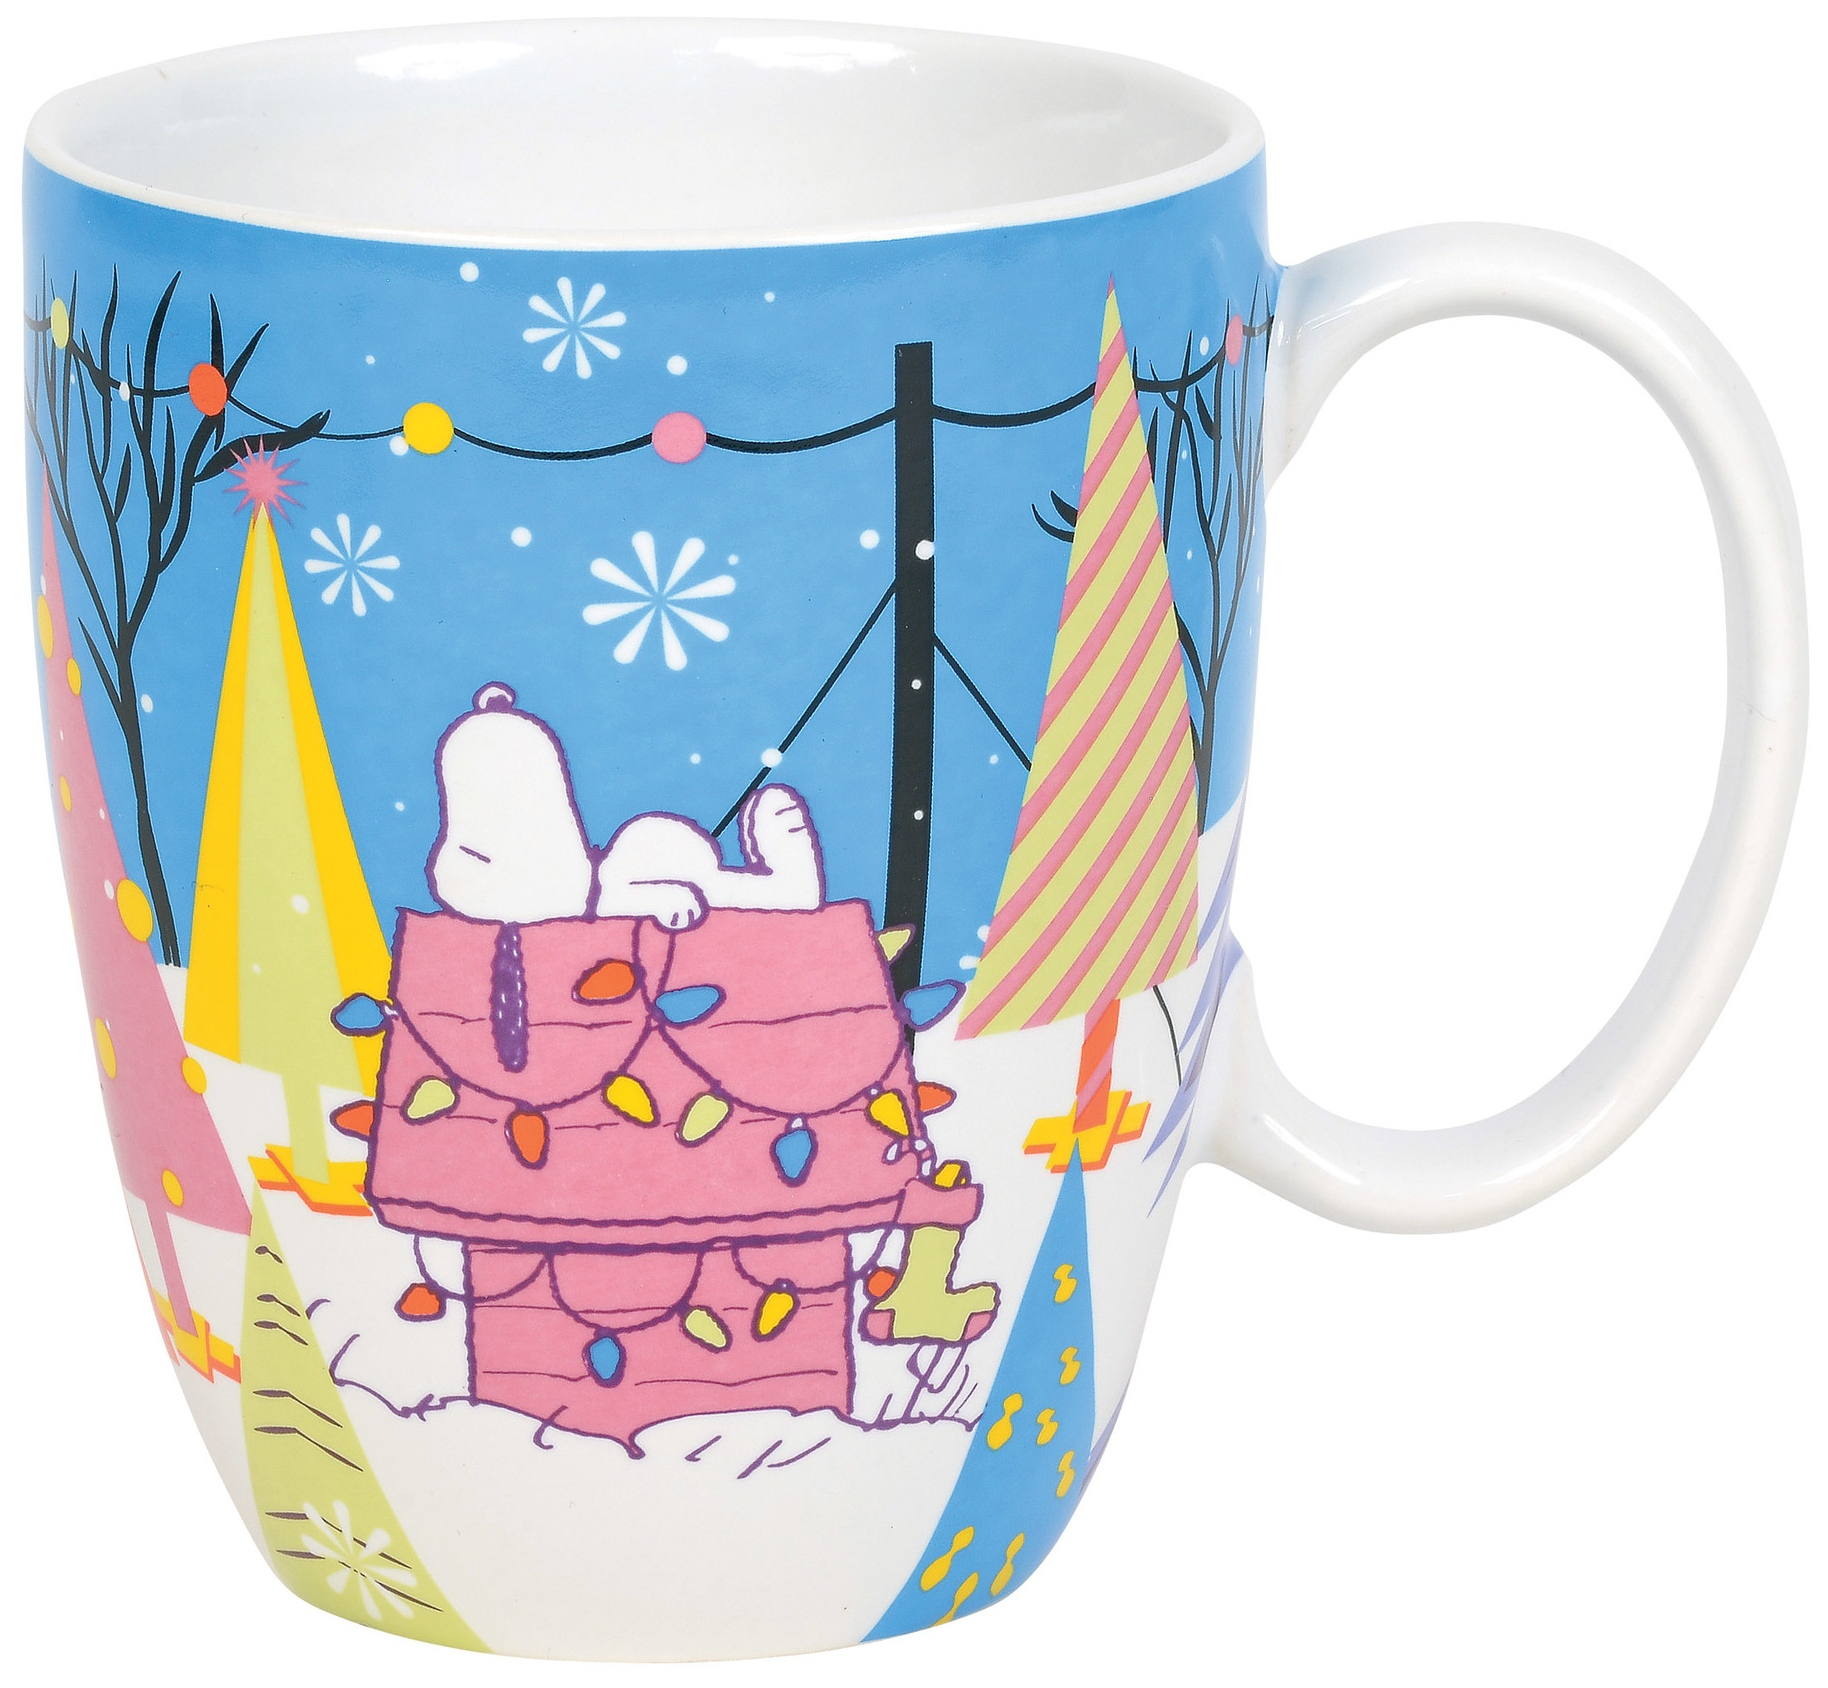 Peanuts by Department 56 6011086N Peanuts mug blue